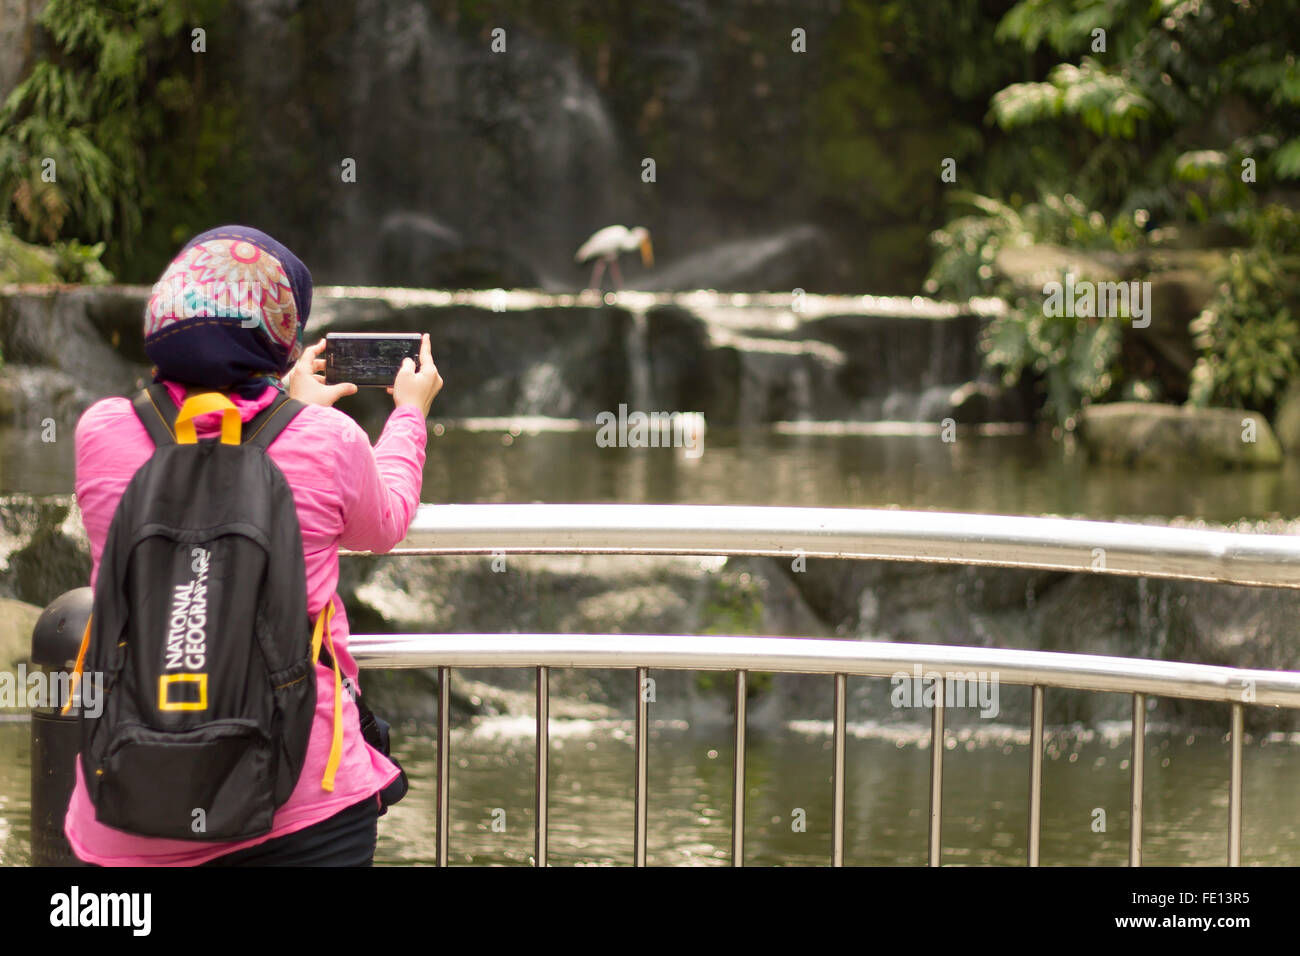 A Muslim tourist woman with Hijab and a national geography backpack walking in Bird Park in Kuala Lumpur, Malaysia - Stock Image